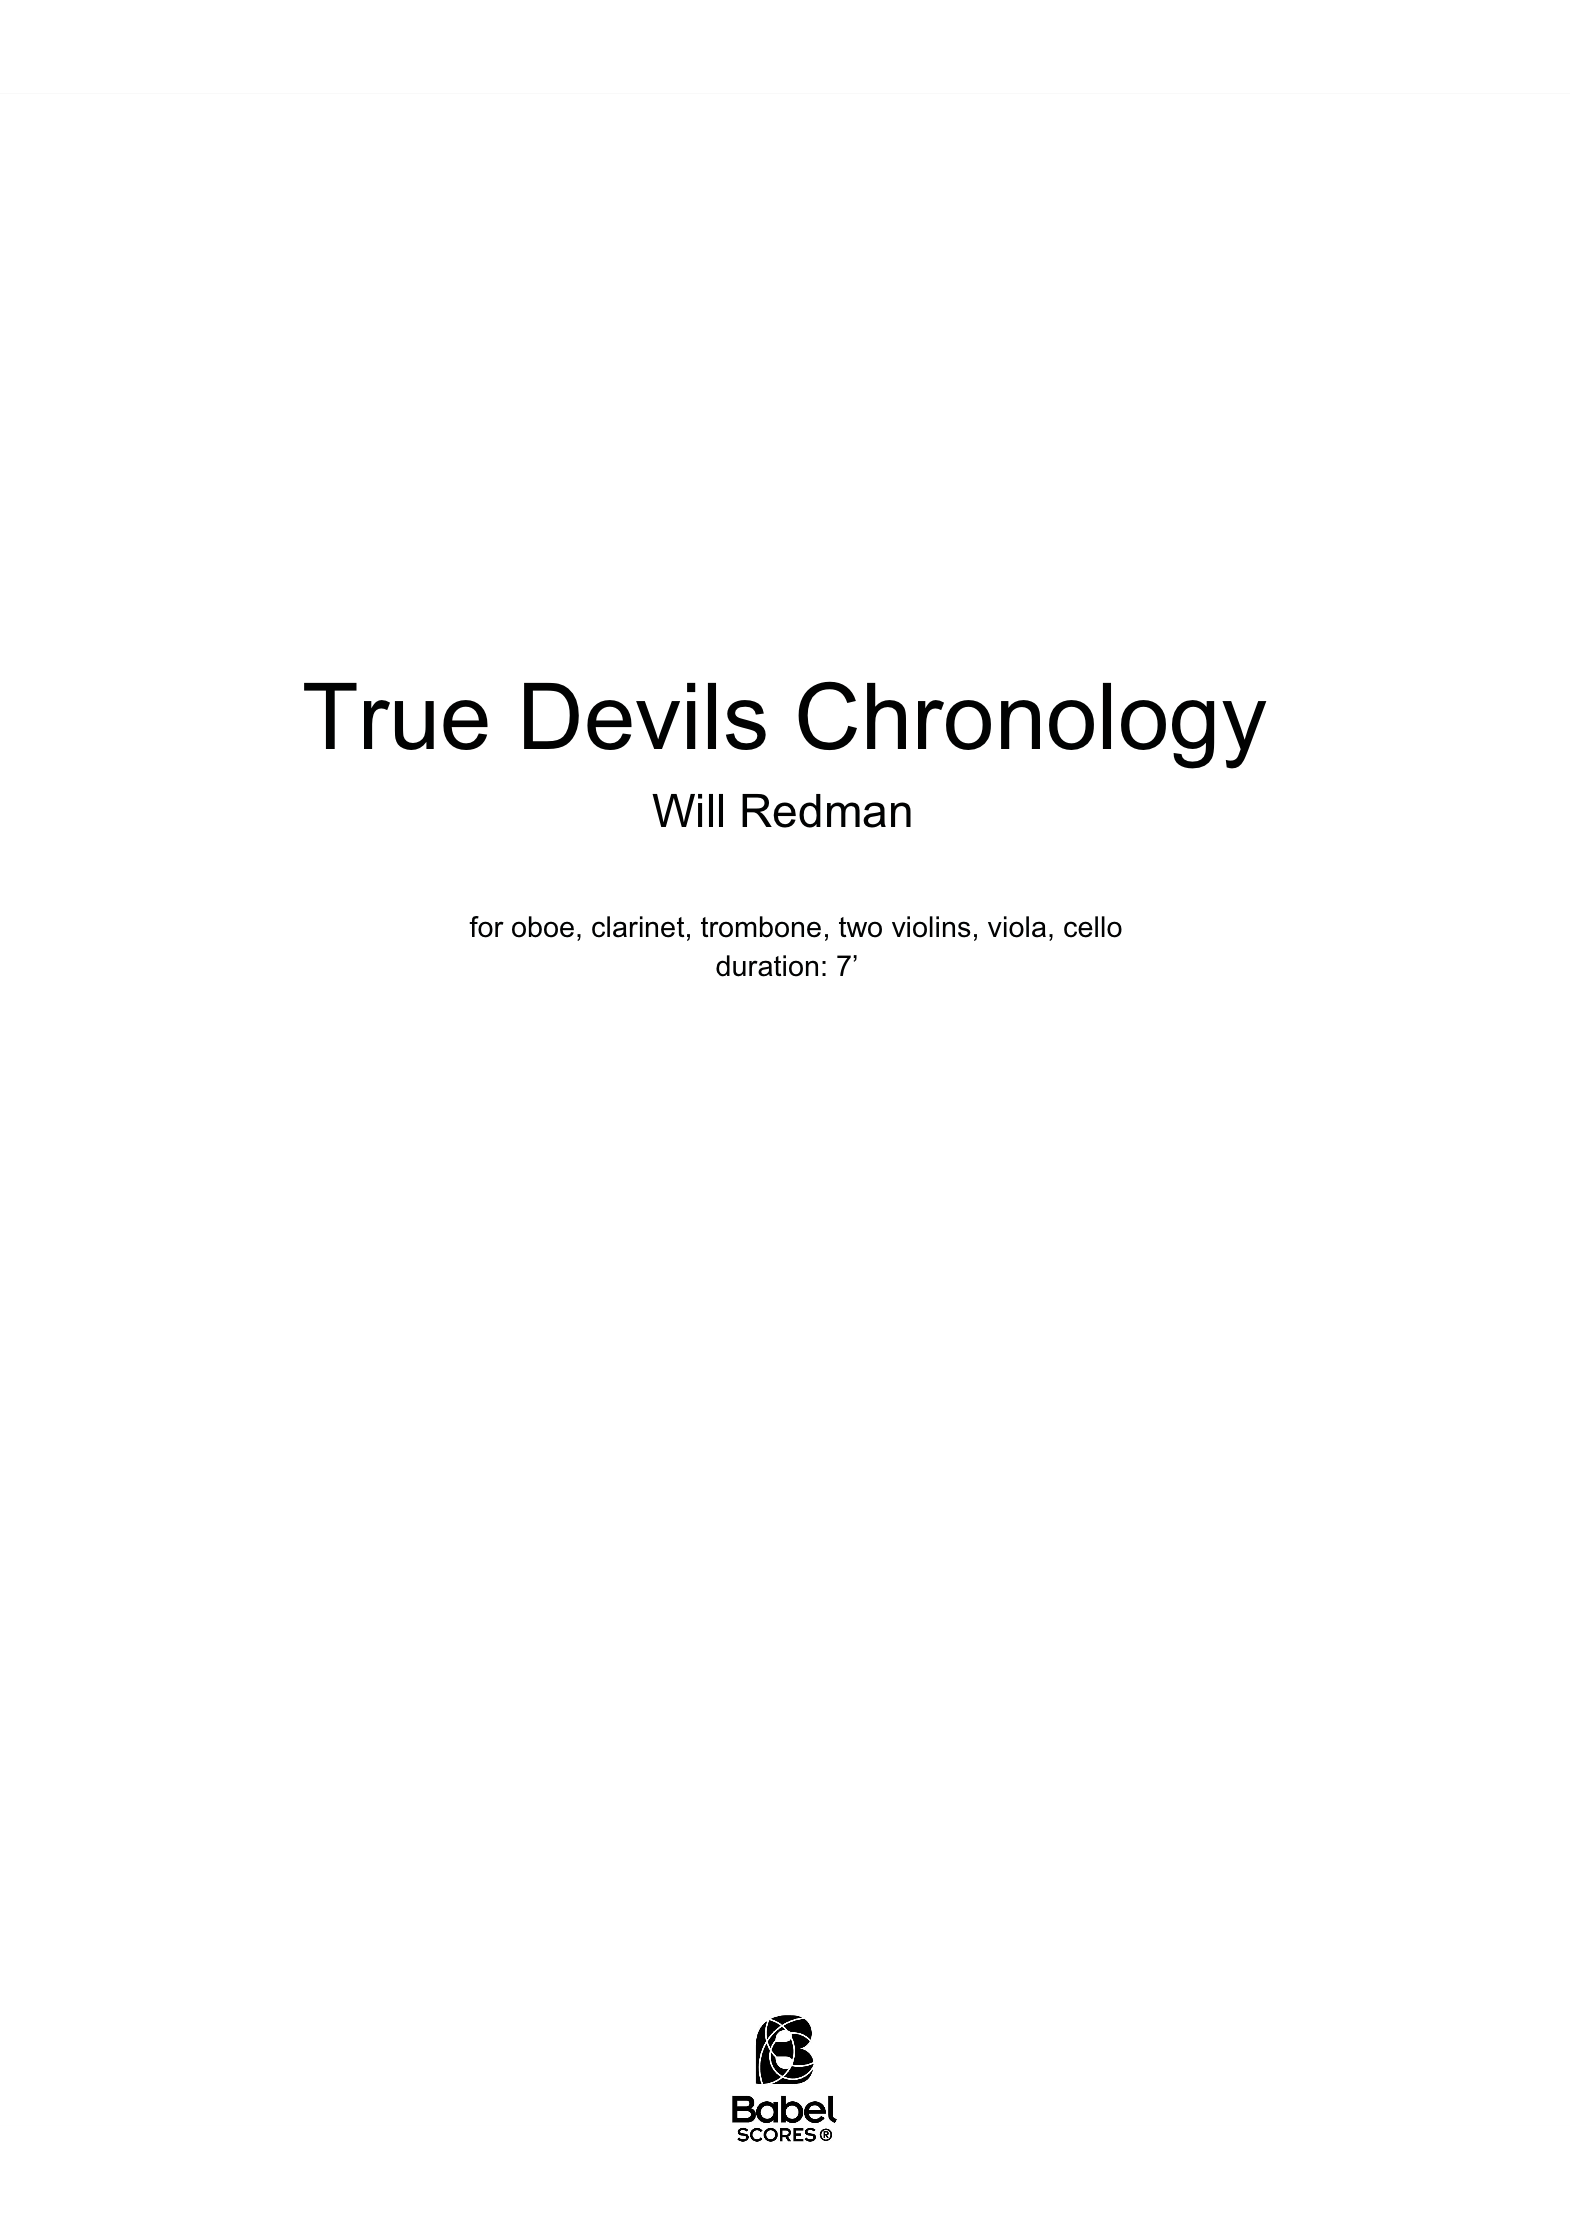 True Devils Chronology A4 z